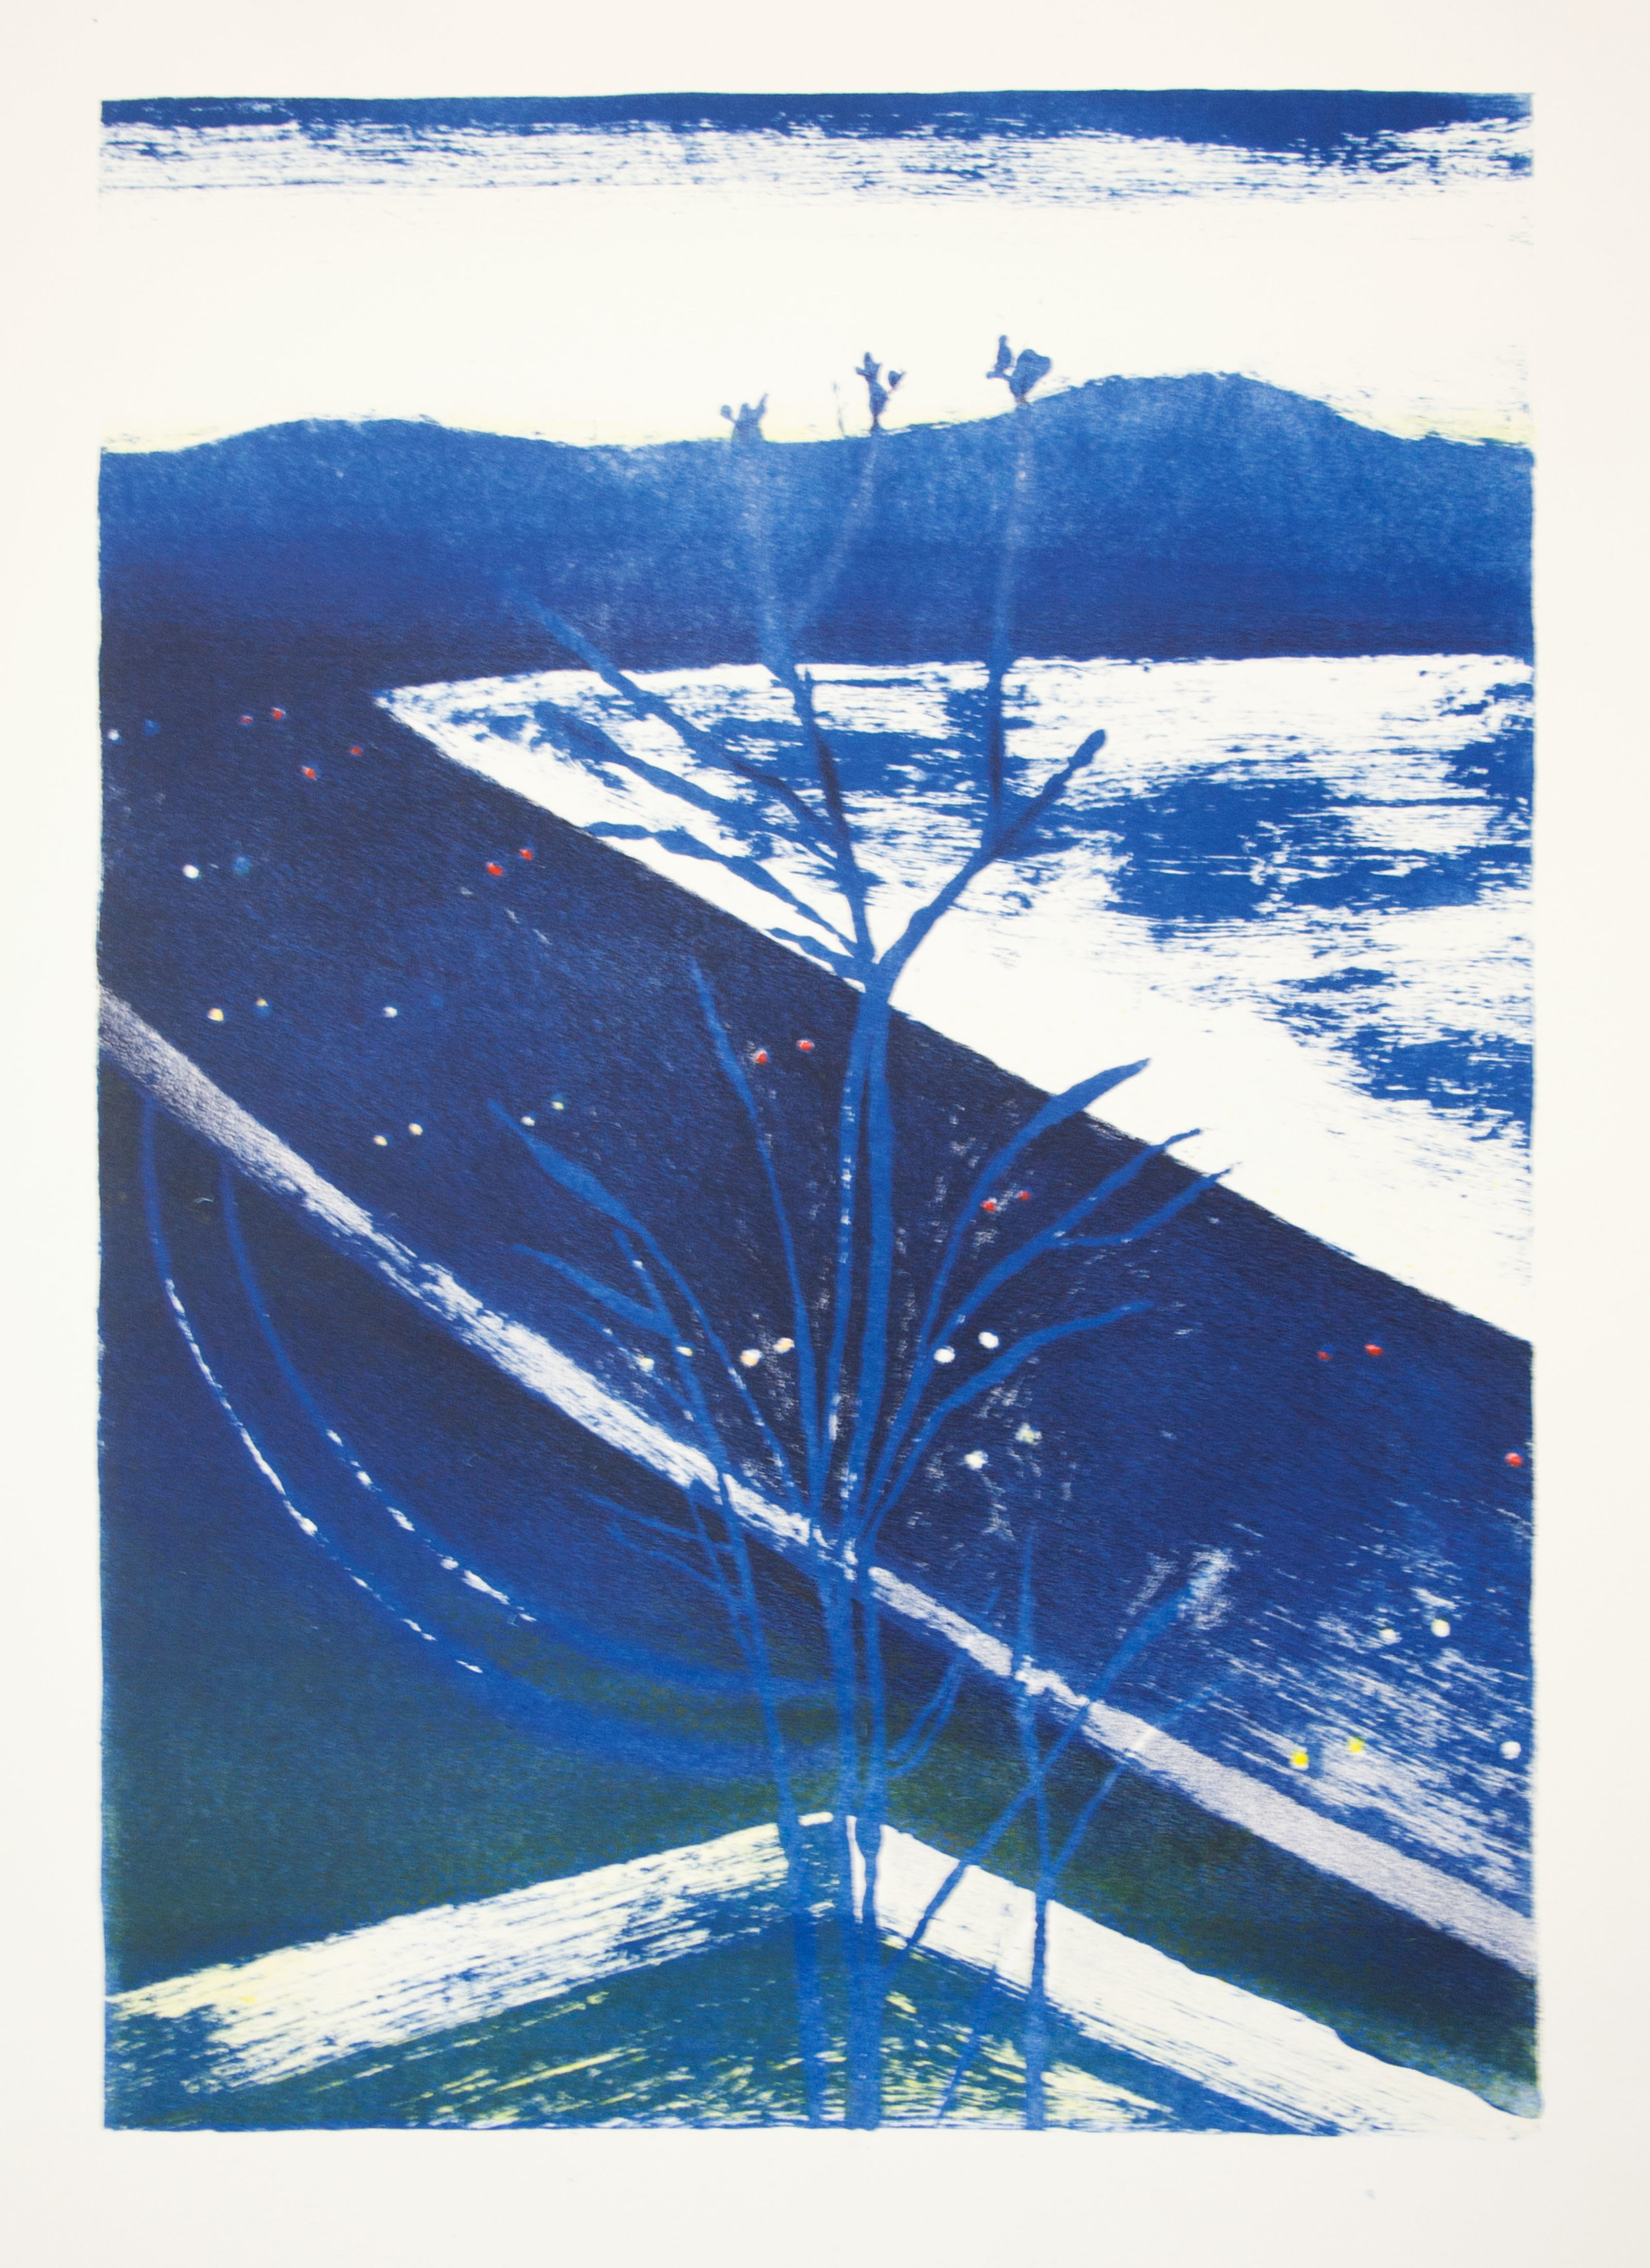 Tree in Blue, Lithograph, 16.5 x 11.5 inches, 2015